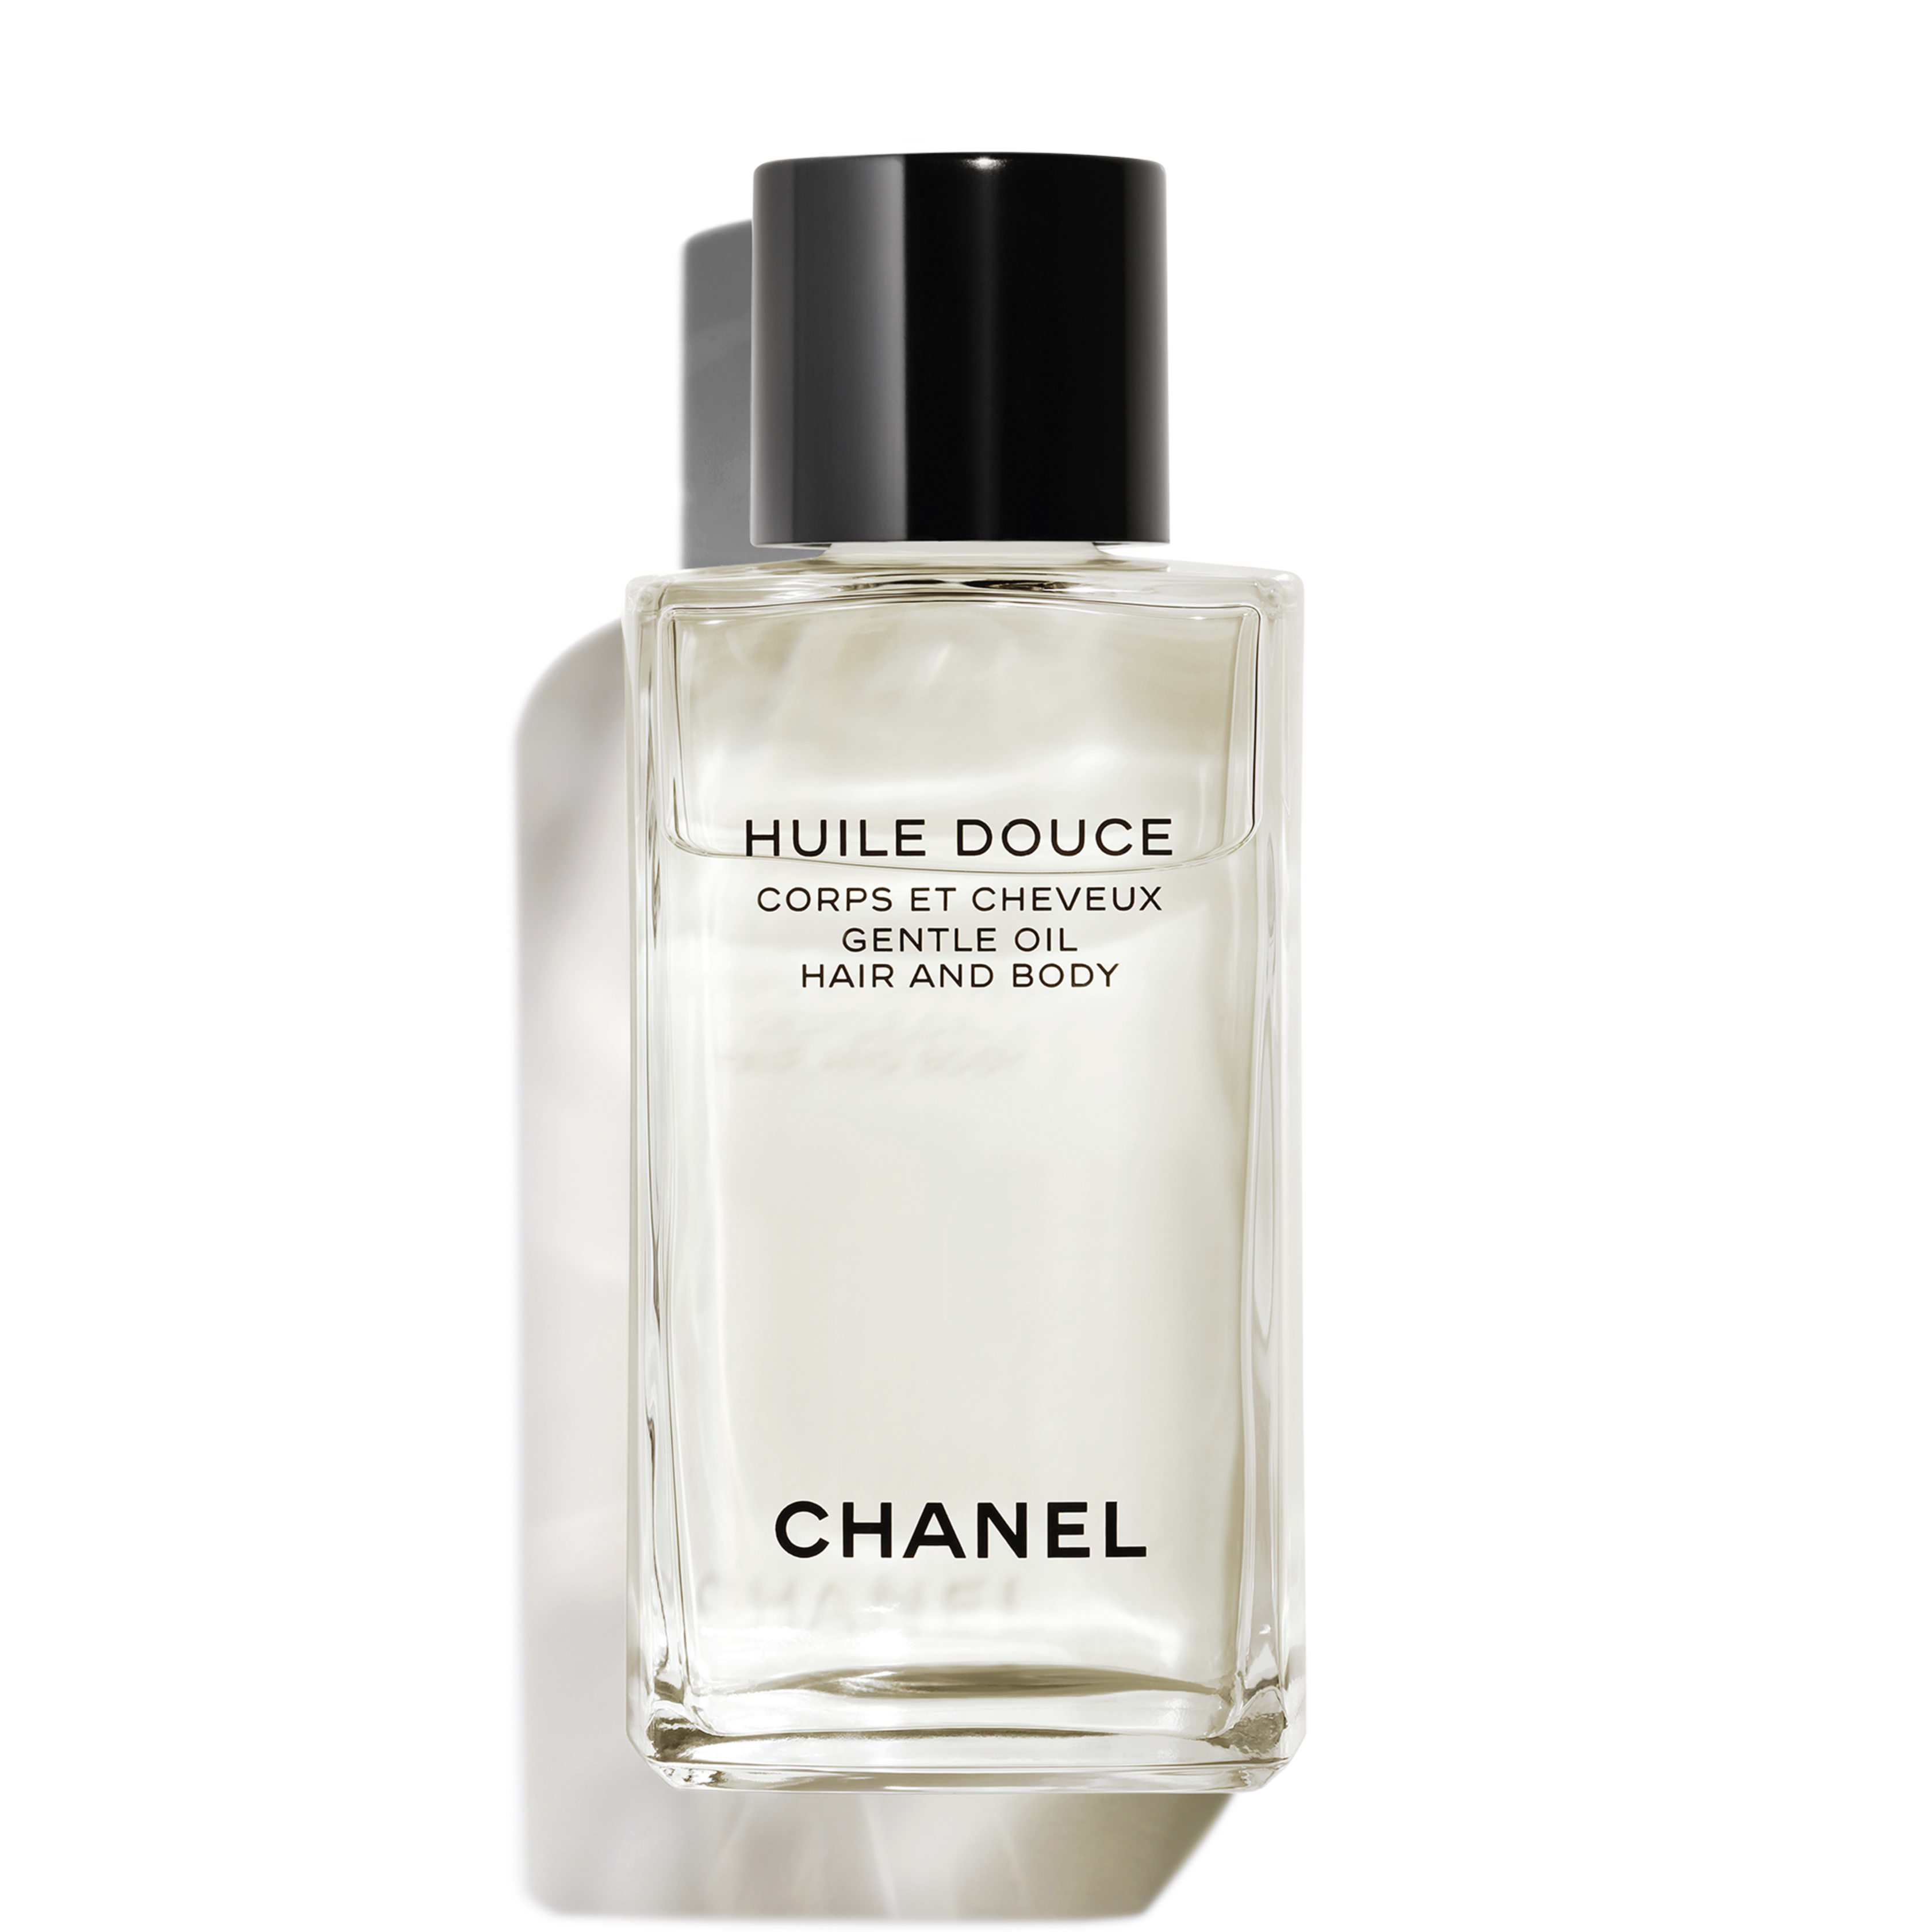 Chanel-Gentle-Oil-for-Hair-and-Body